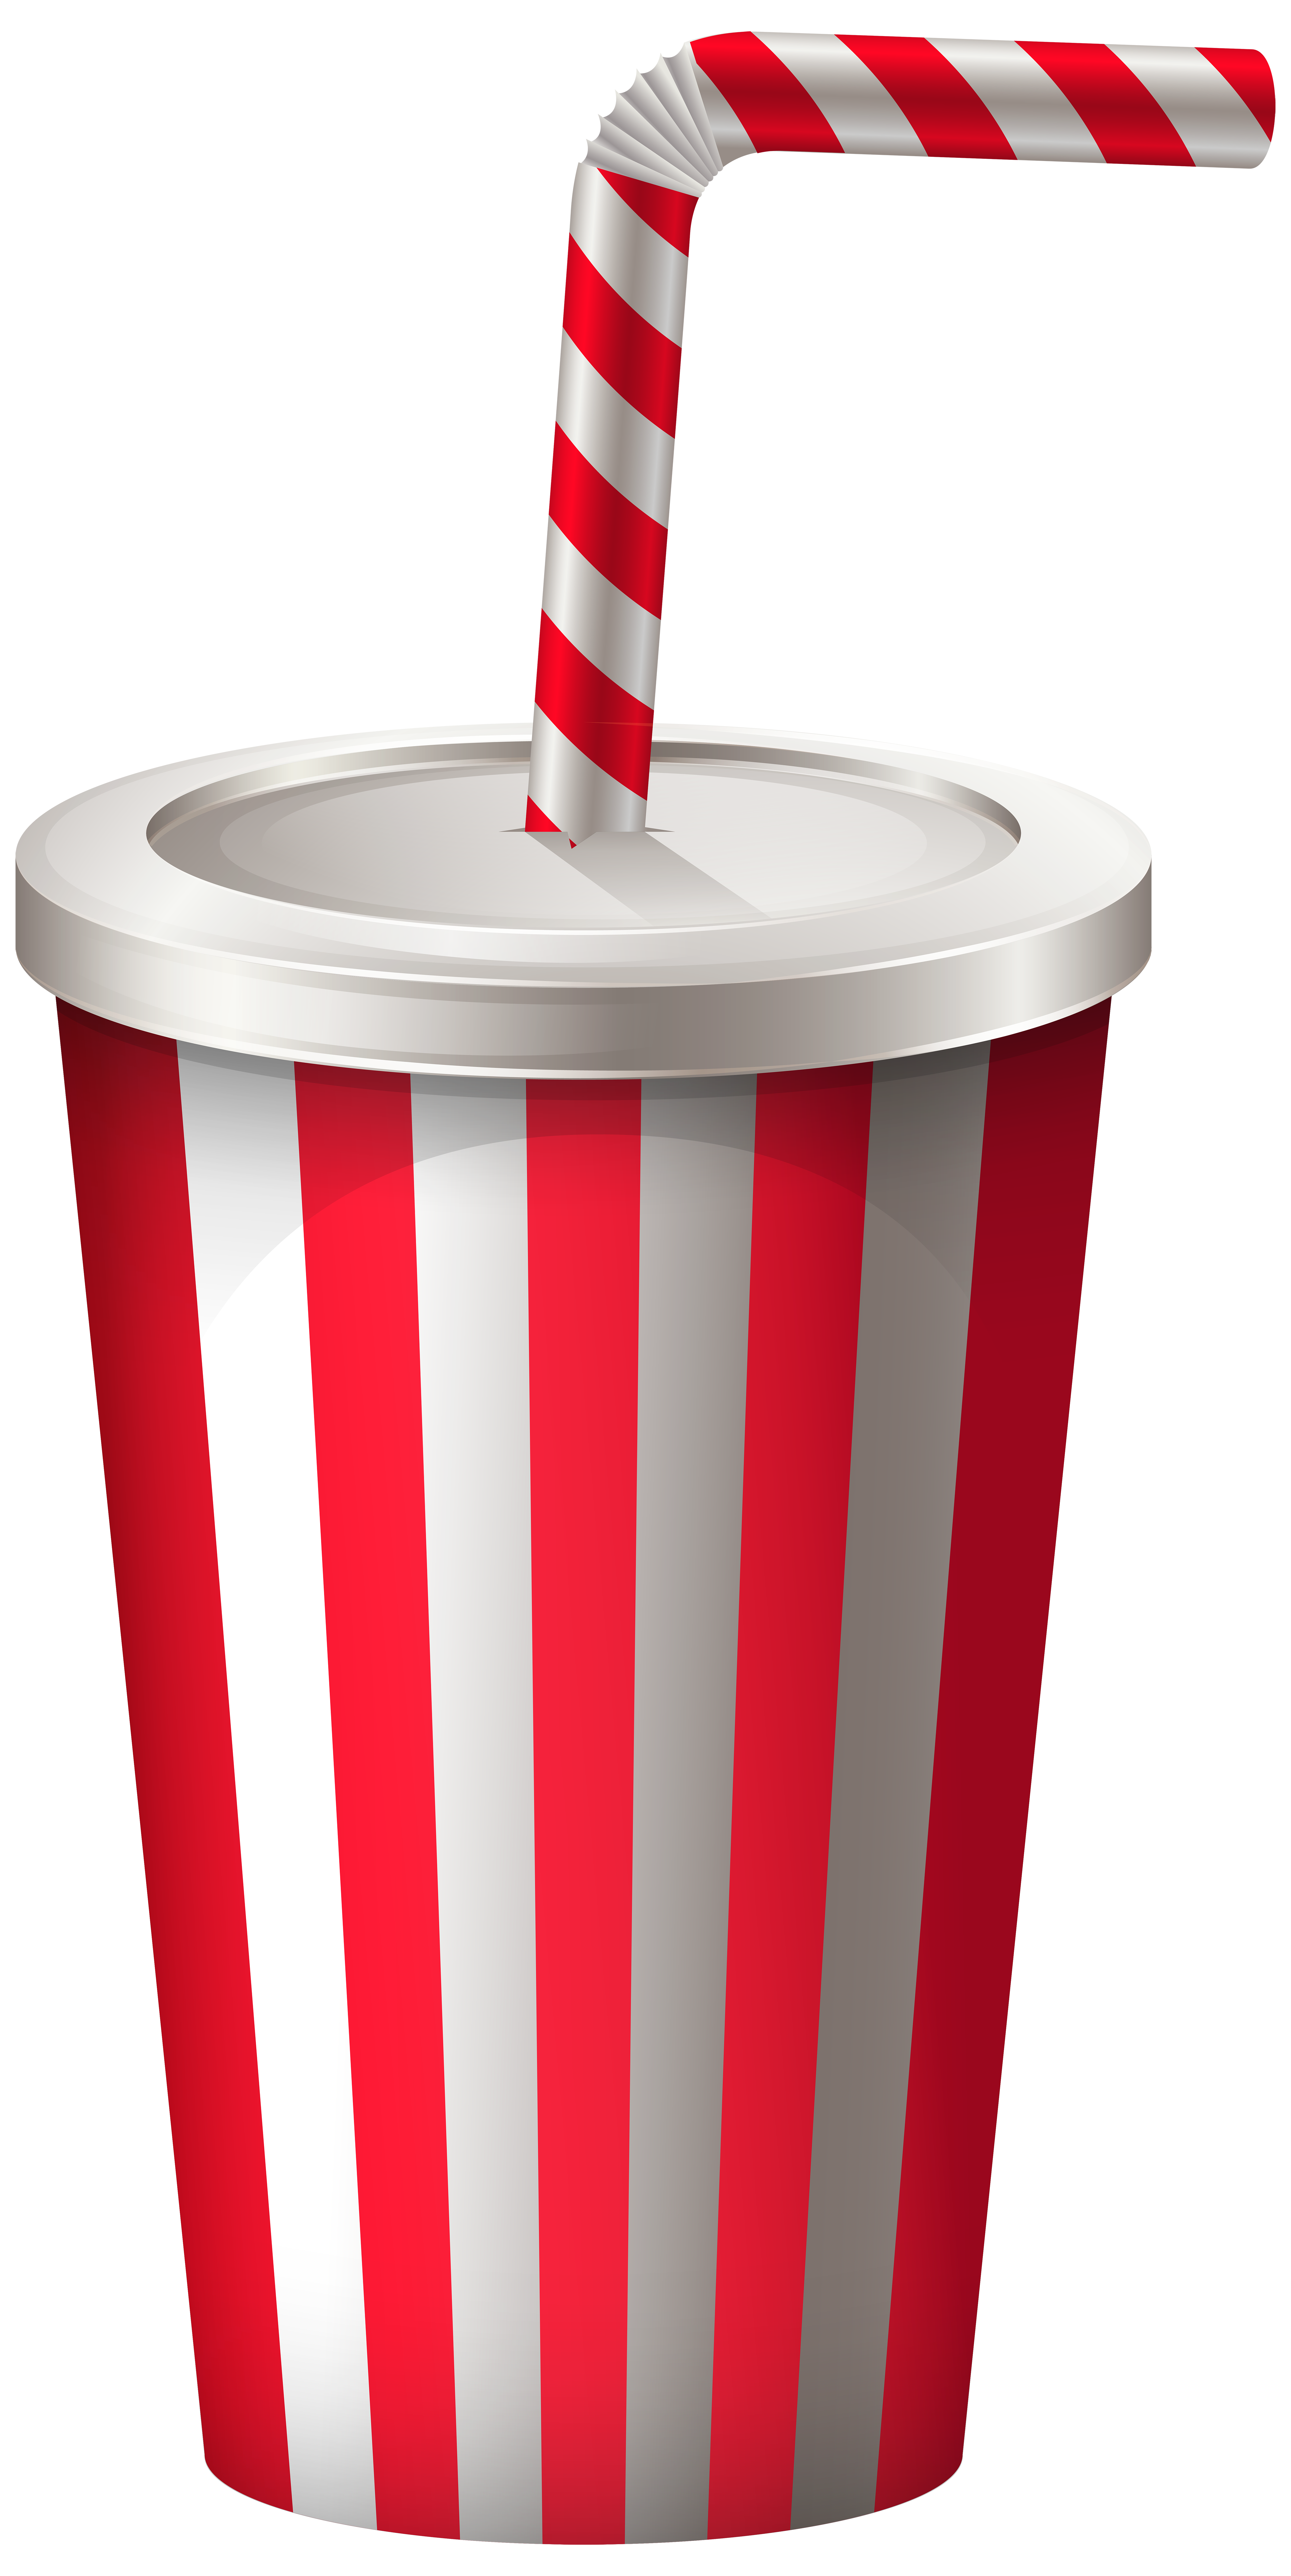 Drink cup with png. Straw clipart picture royalty free download